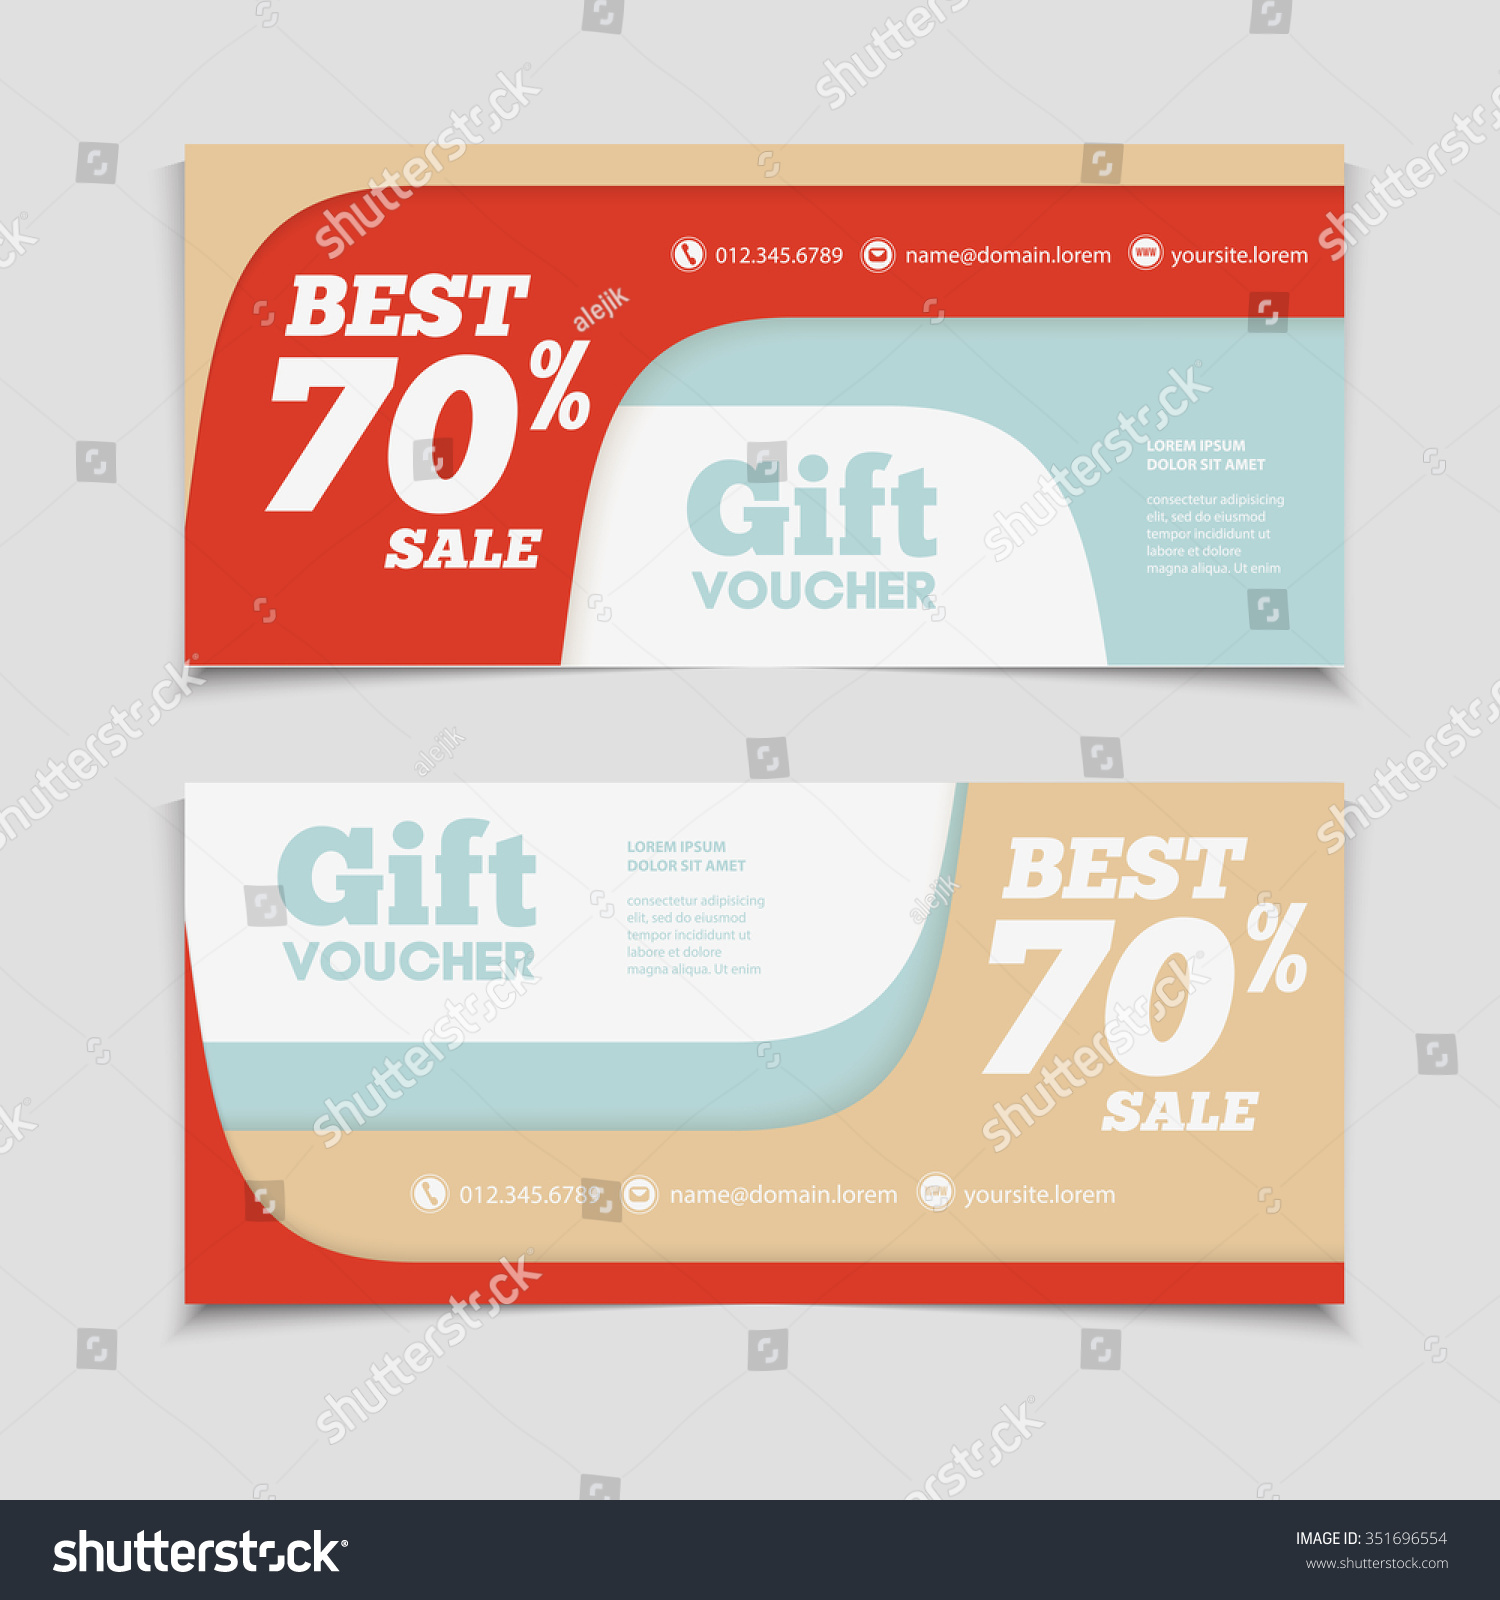 Free restaurant gift certificate template gallery templates coupon voucher template classroom agenda template free restaurant gift certificate template choice image templates stock vector xflitez Choice Image